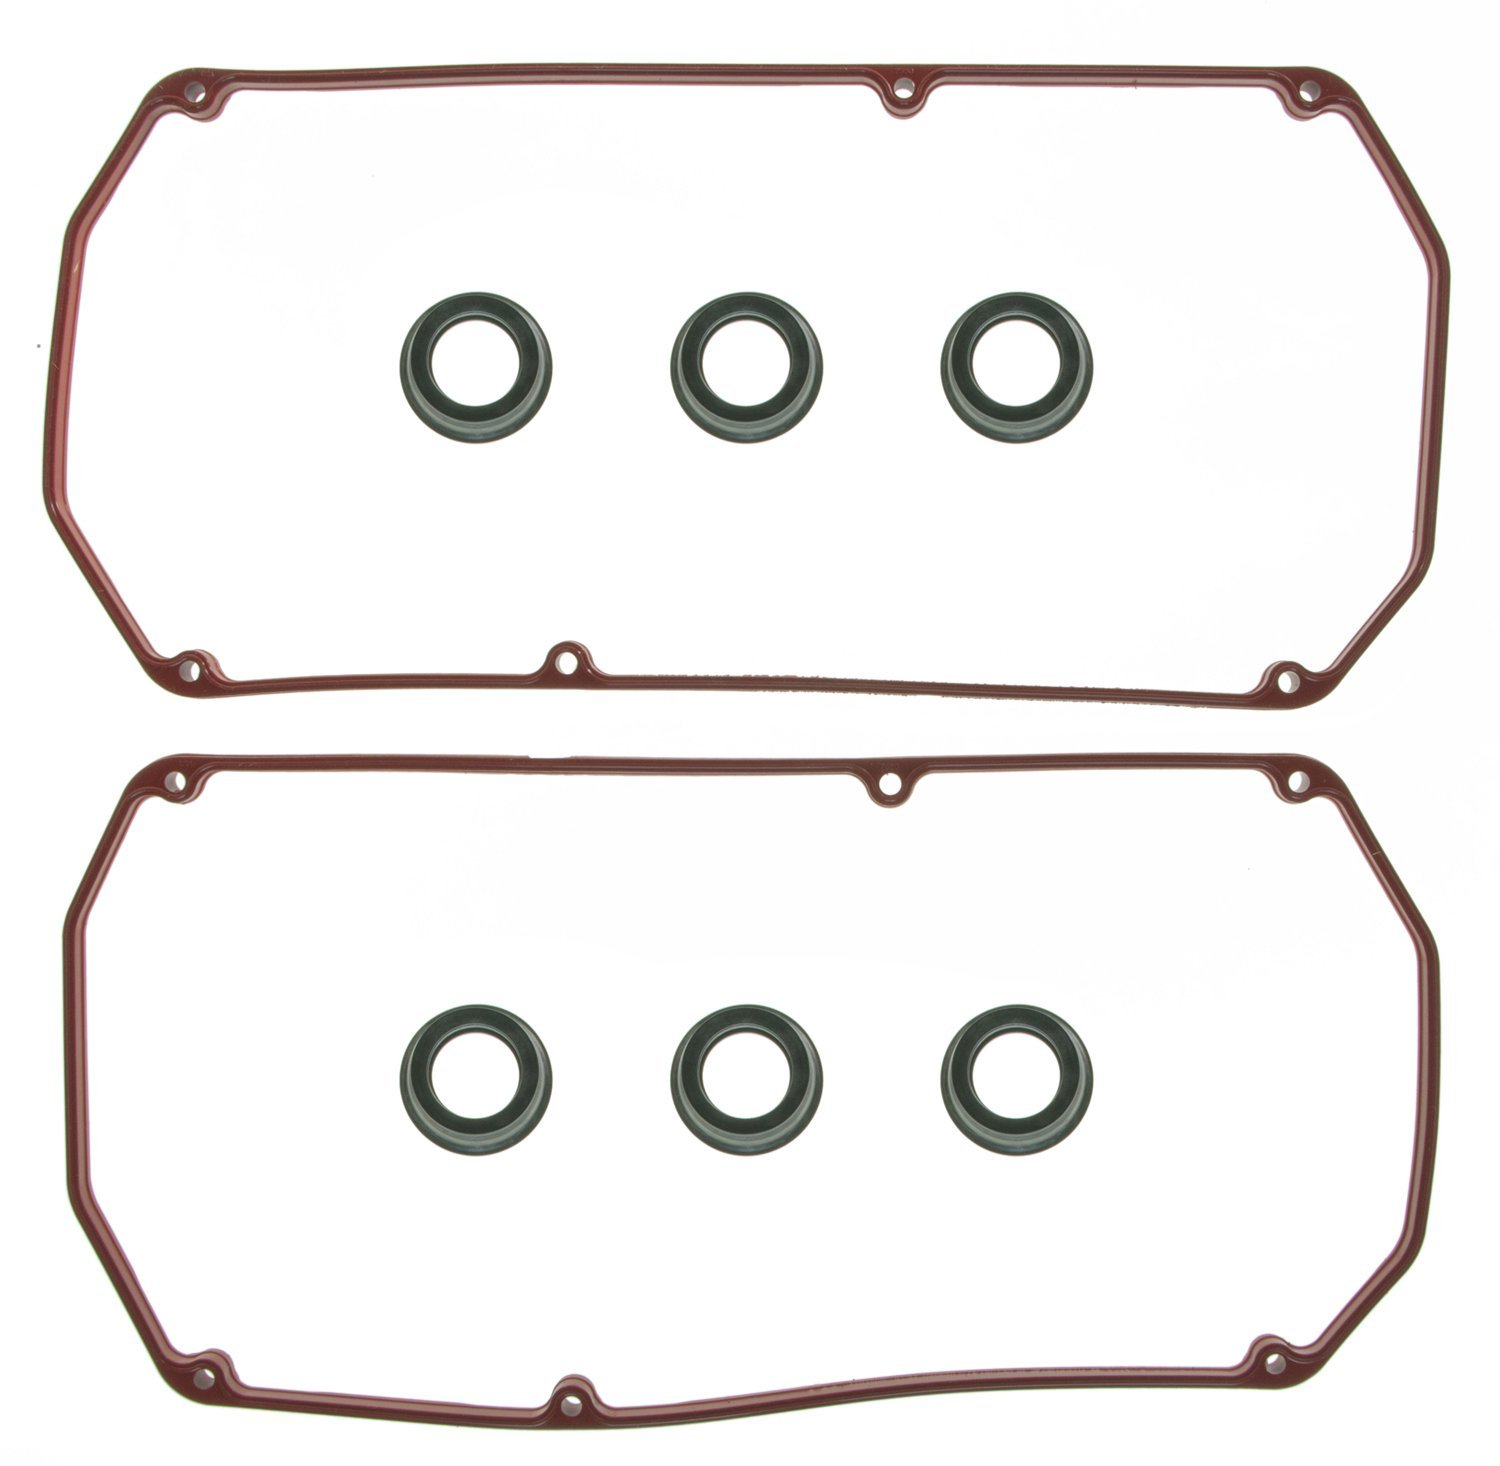 Engine Valve Cover Gasket Set Fel-Pro VS 50528 R-1